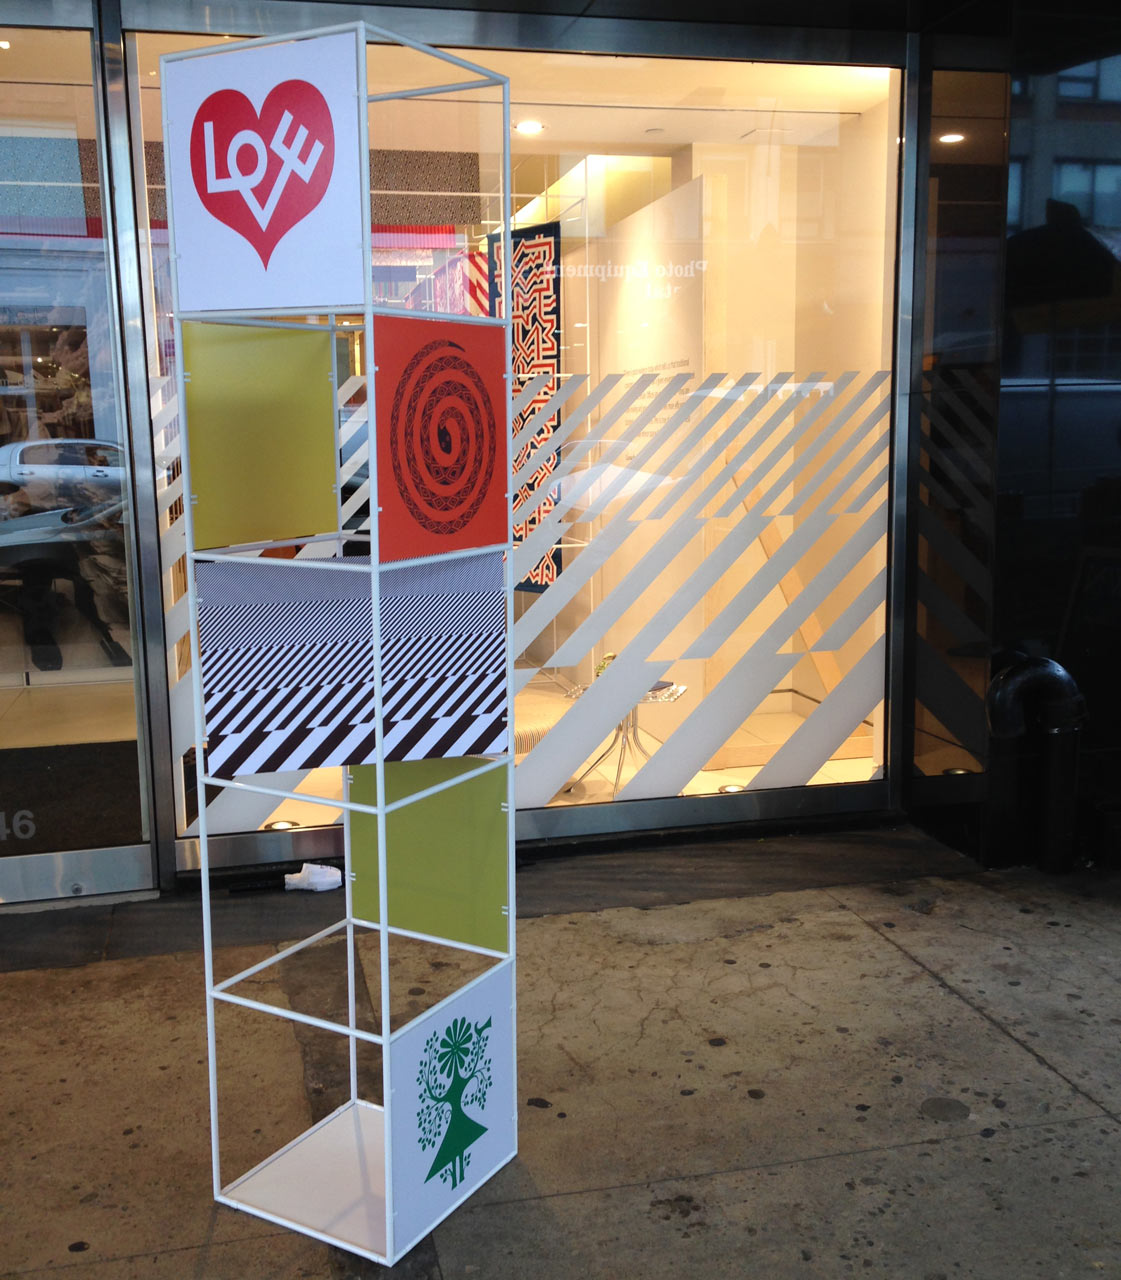 A Visit to Alexander Girard's Pop-Up Exhibition